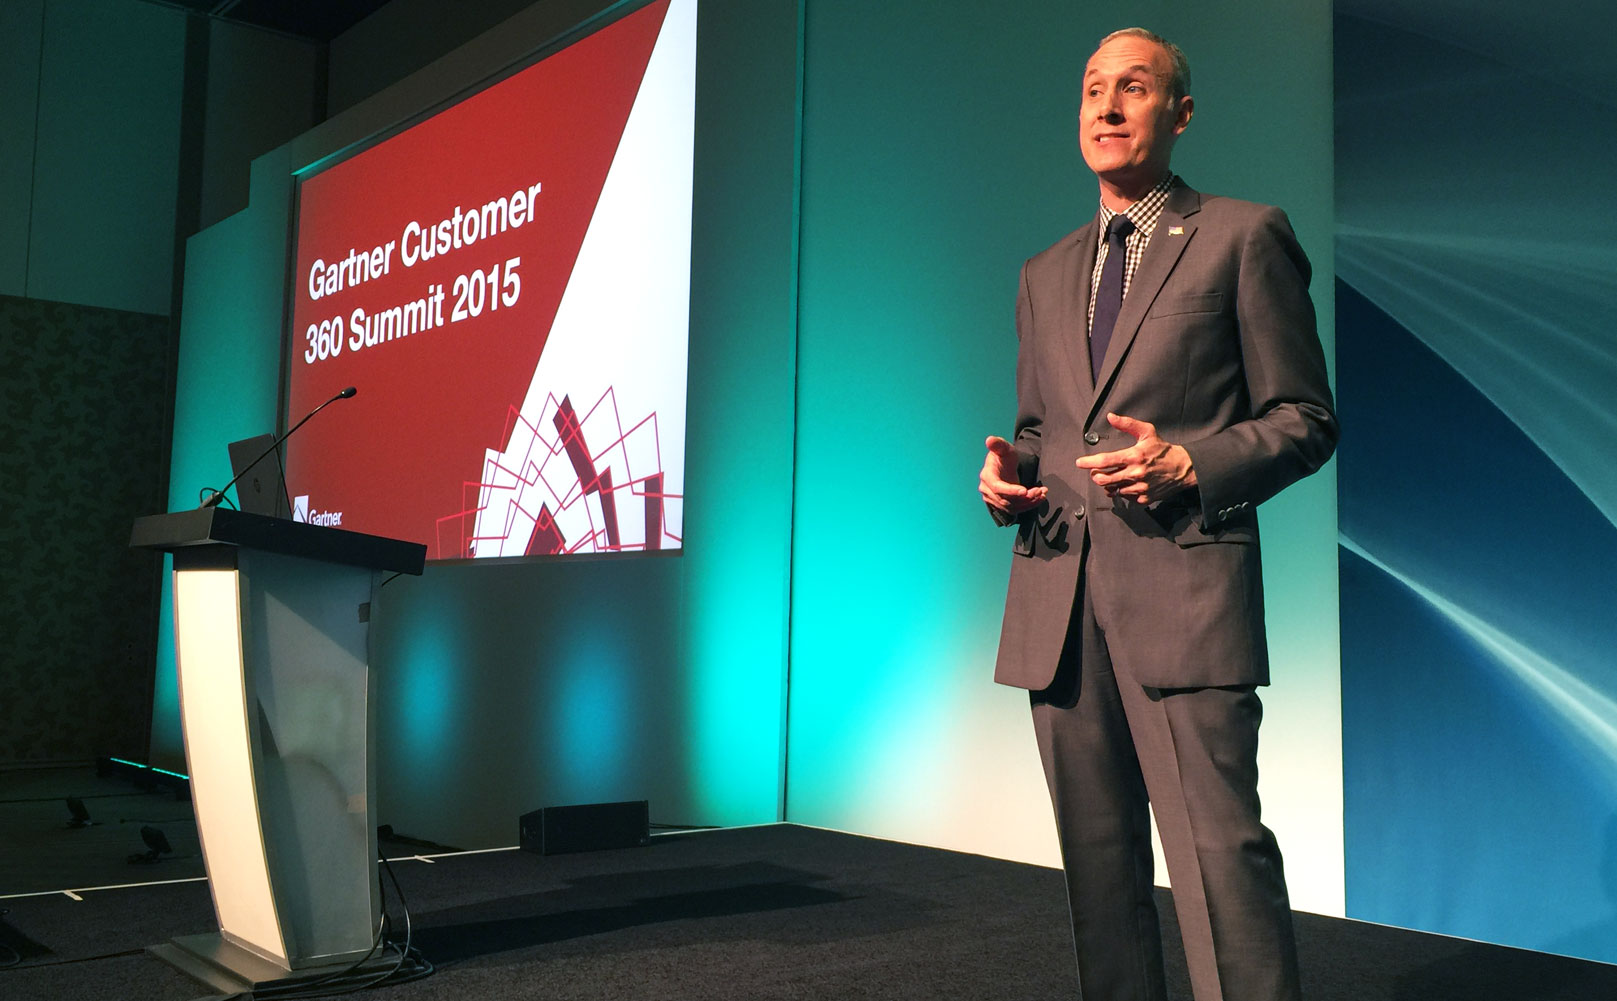 Gartner's Don Scheibenreif says to put customers at the center of innovation.